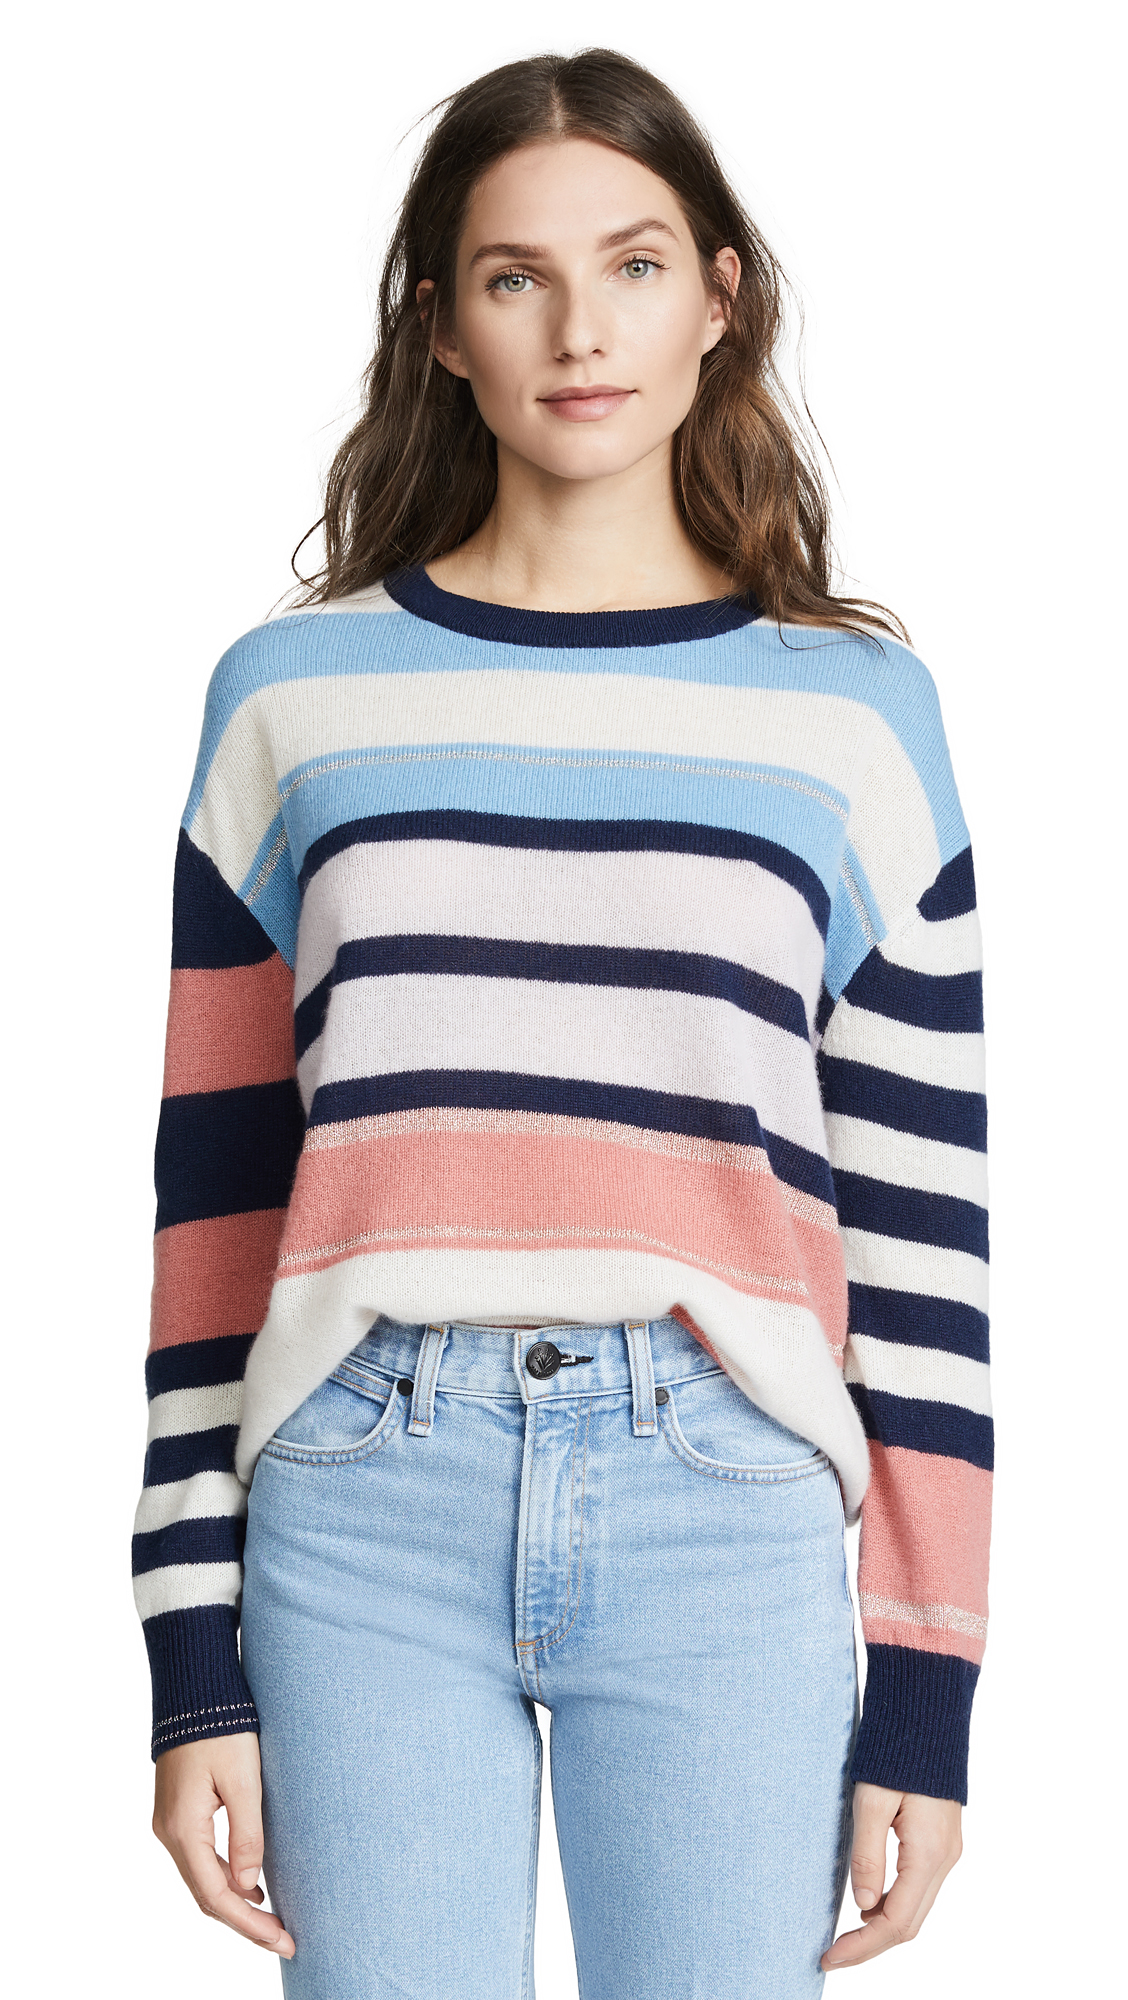 360 SWEATER Thea Sweater